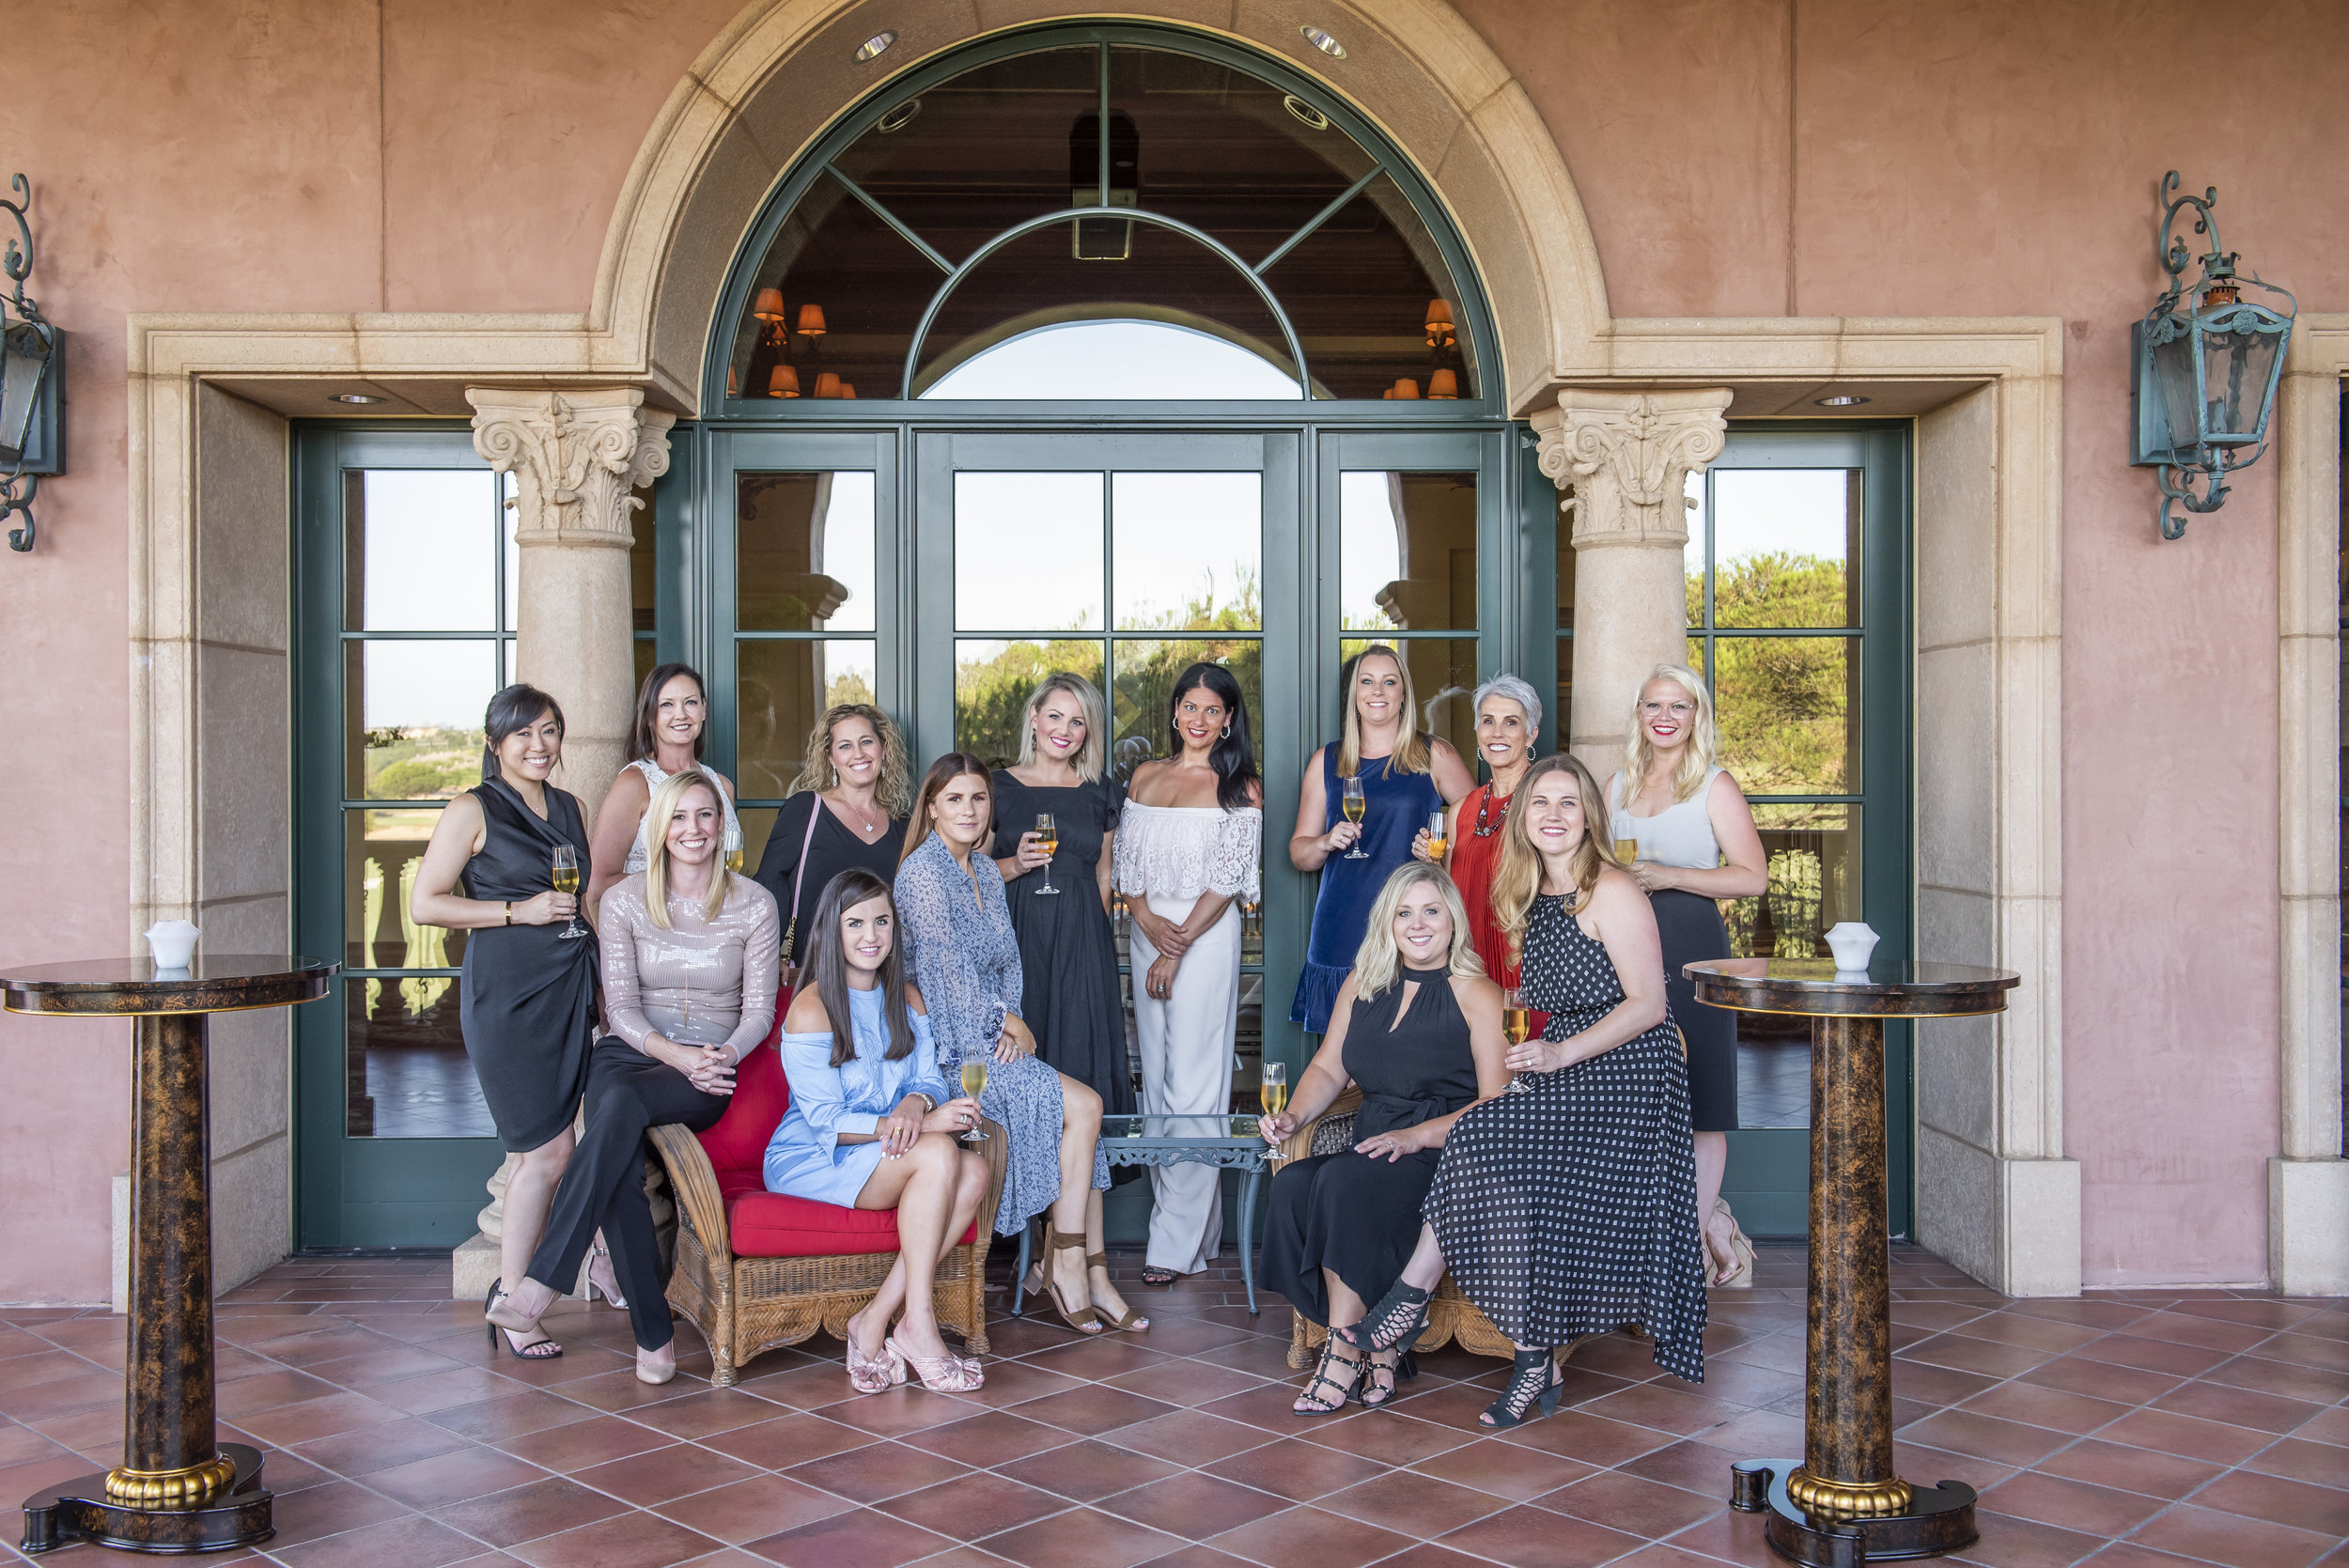 Wedding Planner FAM at The Fairmont Del Mar. Wedding Planner www.andreaeppolitoevents.com. Photo by Boyd Harris.